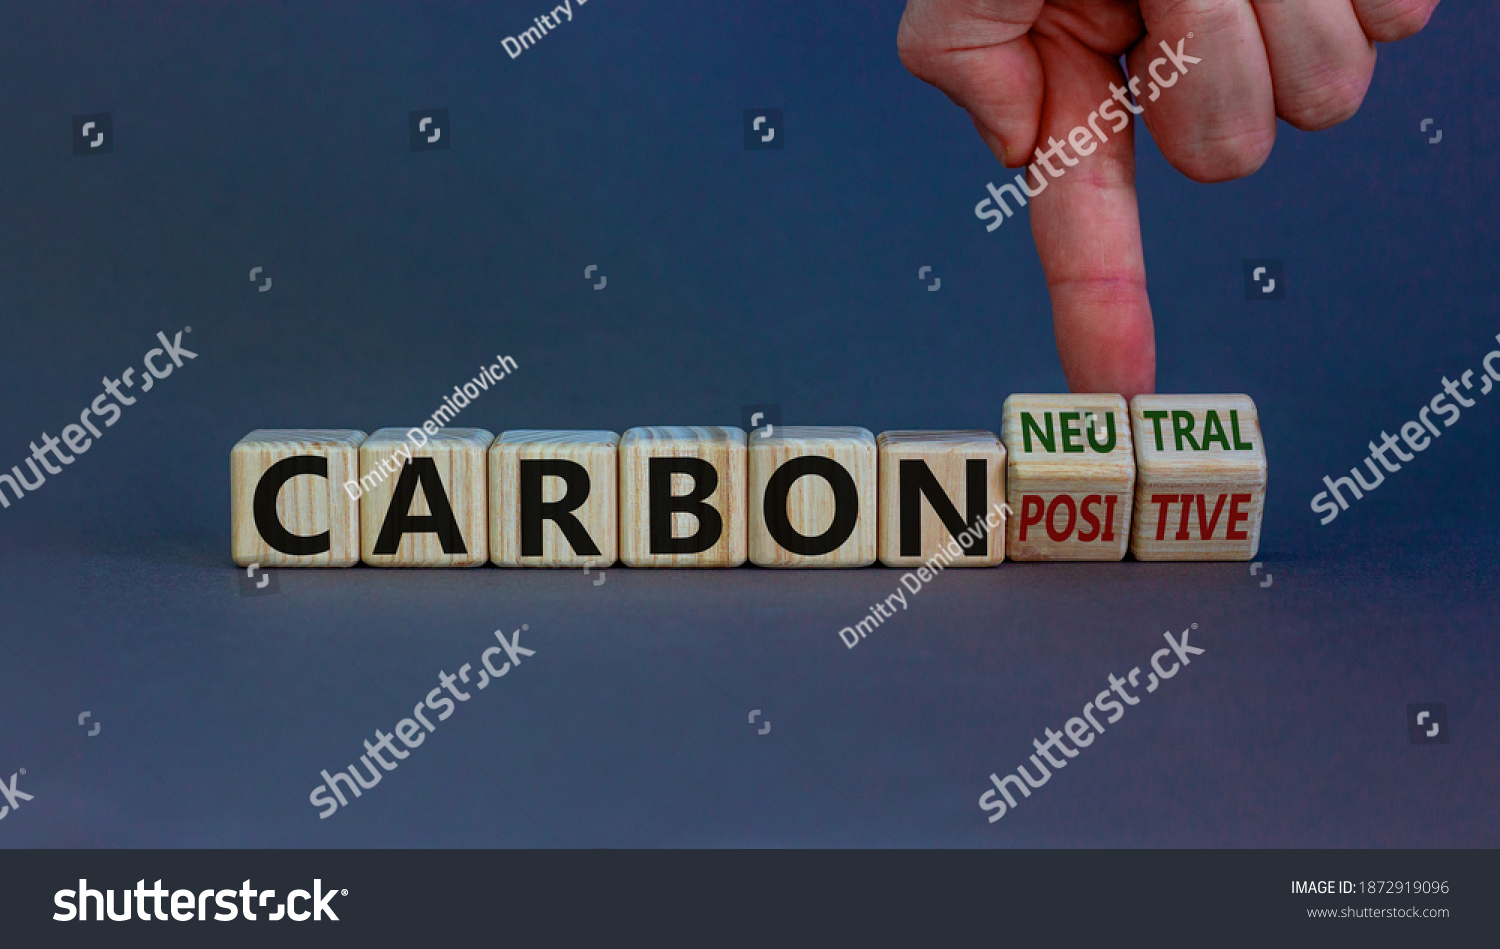 From carbon positive to neutral. Hand flips cubes and changes words 'carbon positive' to 'carbon neutral'. Beautiful white background, copy space. Business, ecological and carbon neutral concept. #1872919096